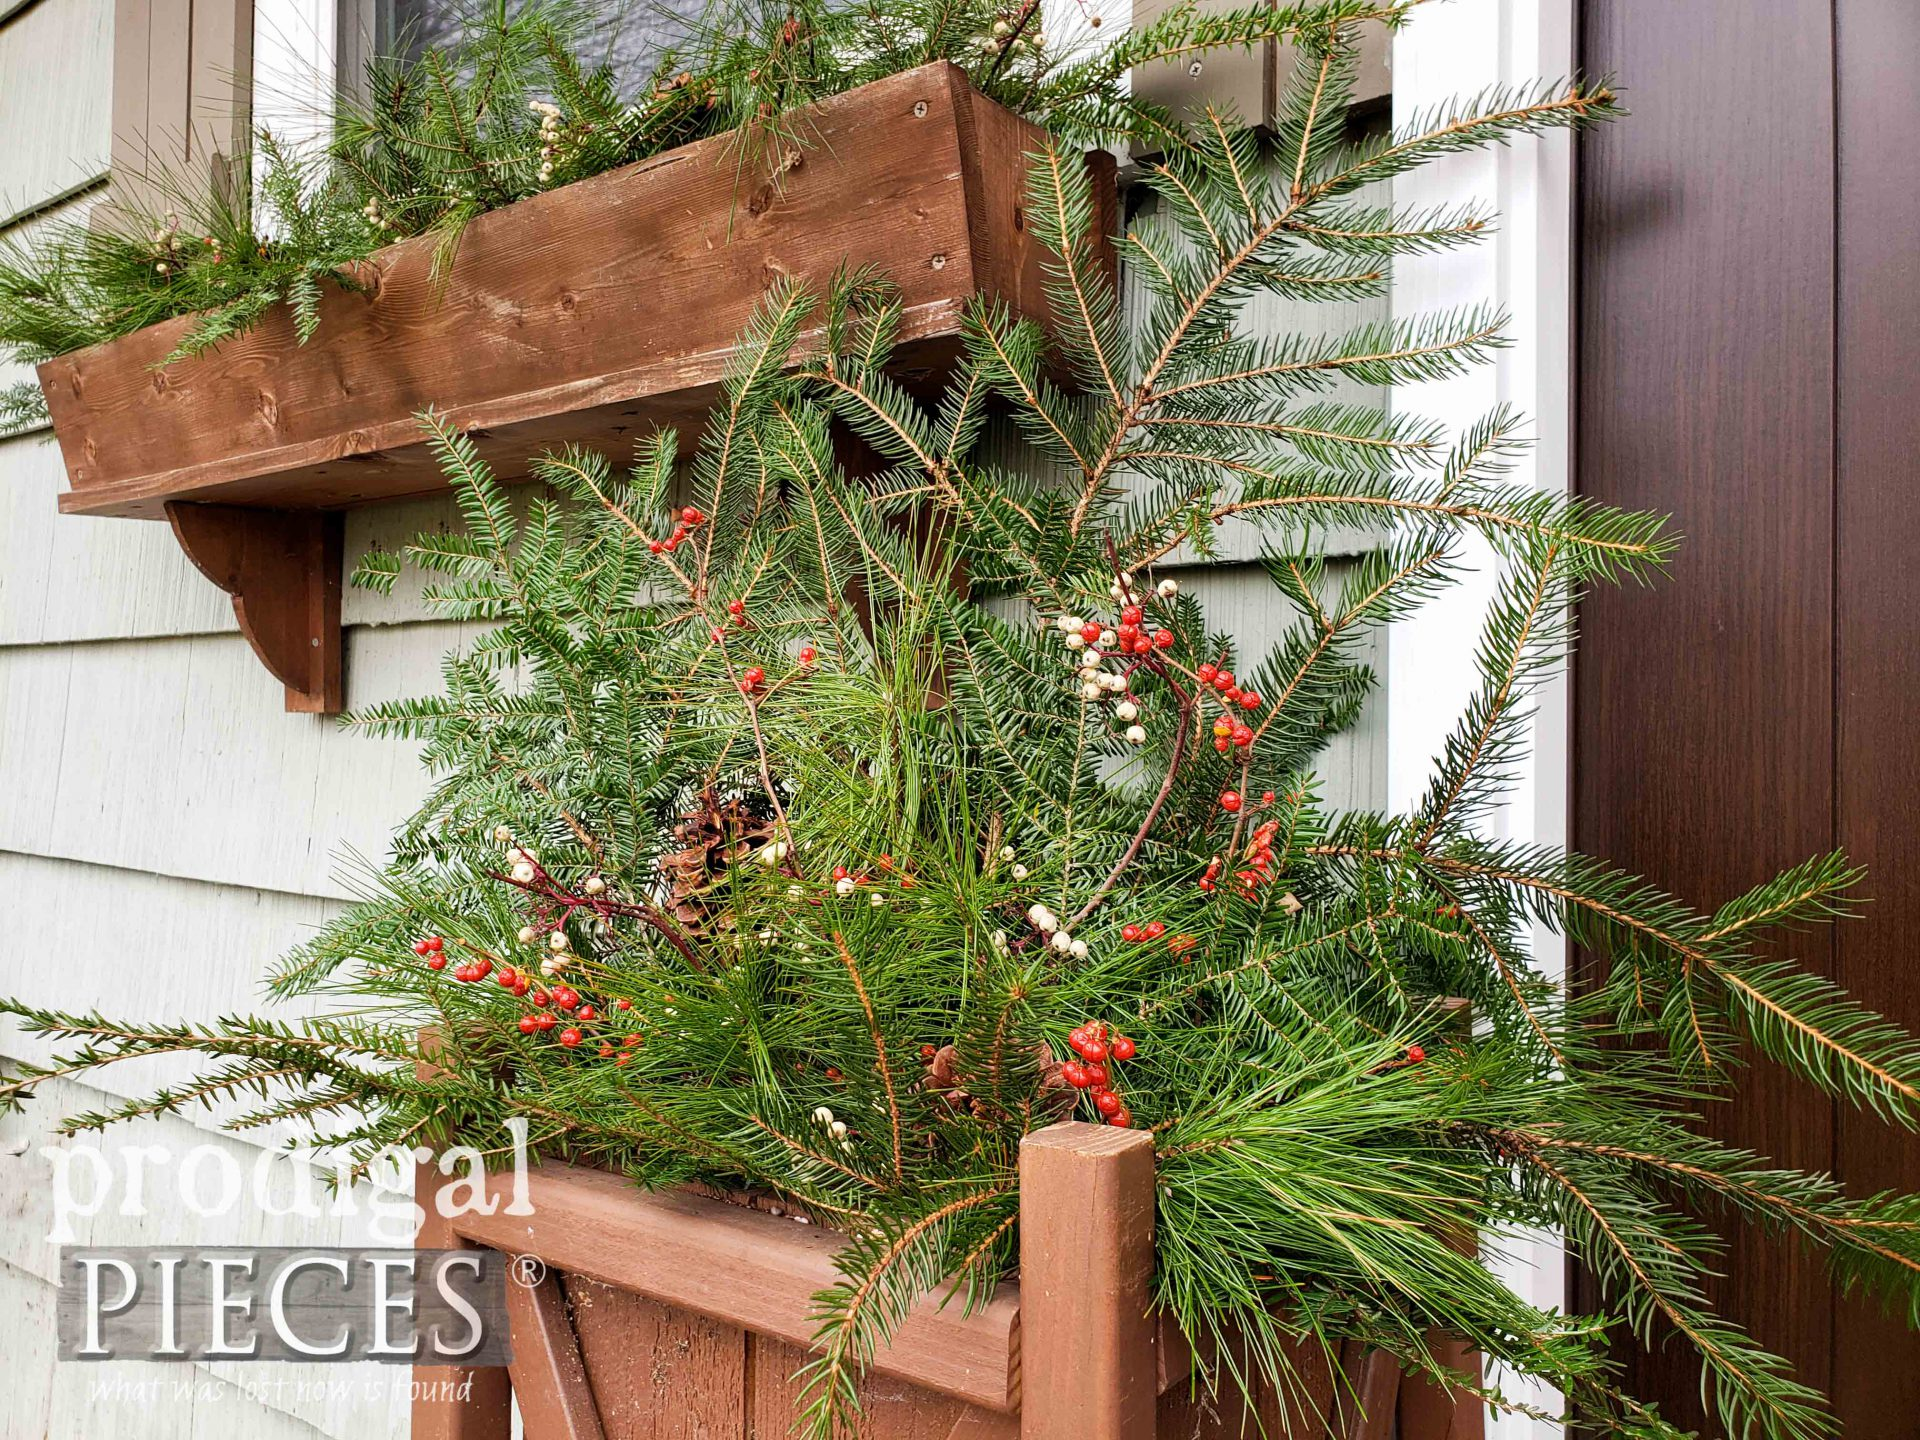 Rustic Farmhouse Christmas Planter from Fresh Foraged Greens & Berries by Larissa of Prodigal Pieces | prodigalpieces.com #prodigalpieces #christmas #home #diy #farmhouse #garden #homedecor #holiday #winter